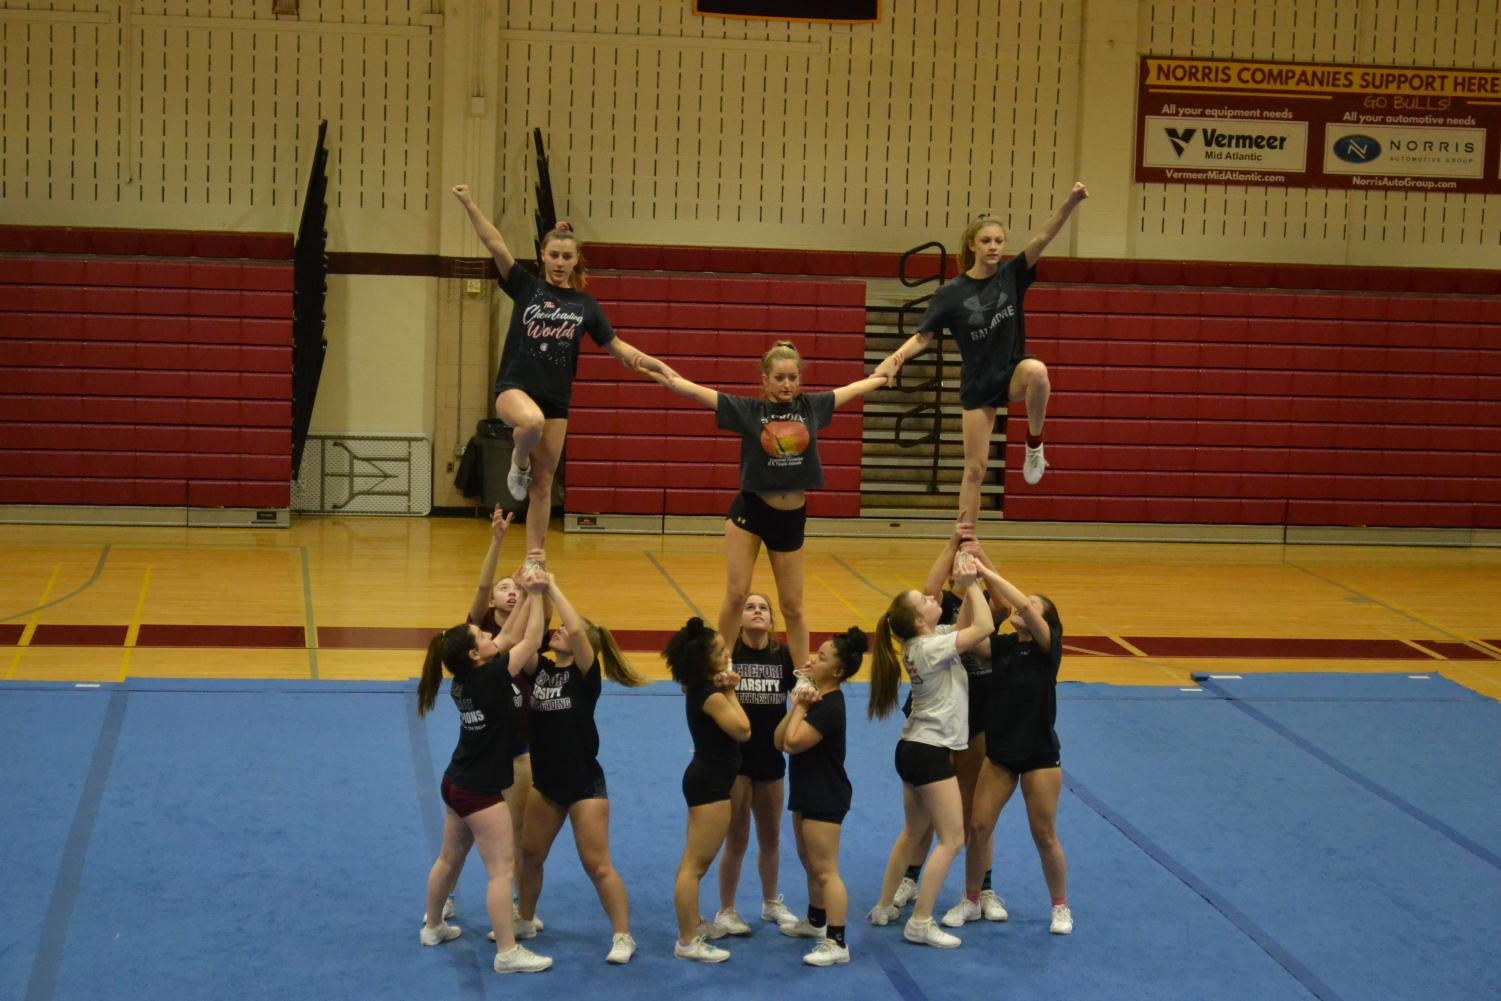 Emma DiVenti ('22) supports her teammates during their stunt. The team practiced this move daily to perfect it.